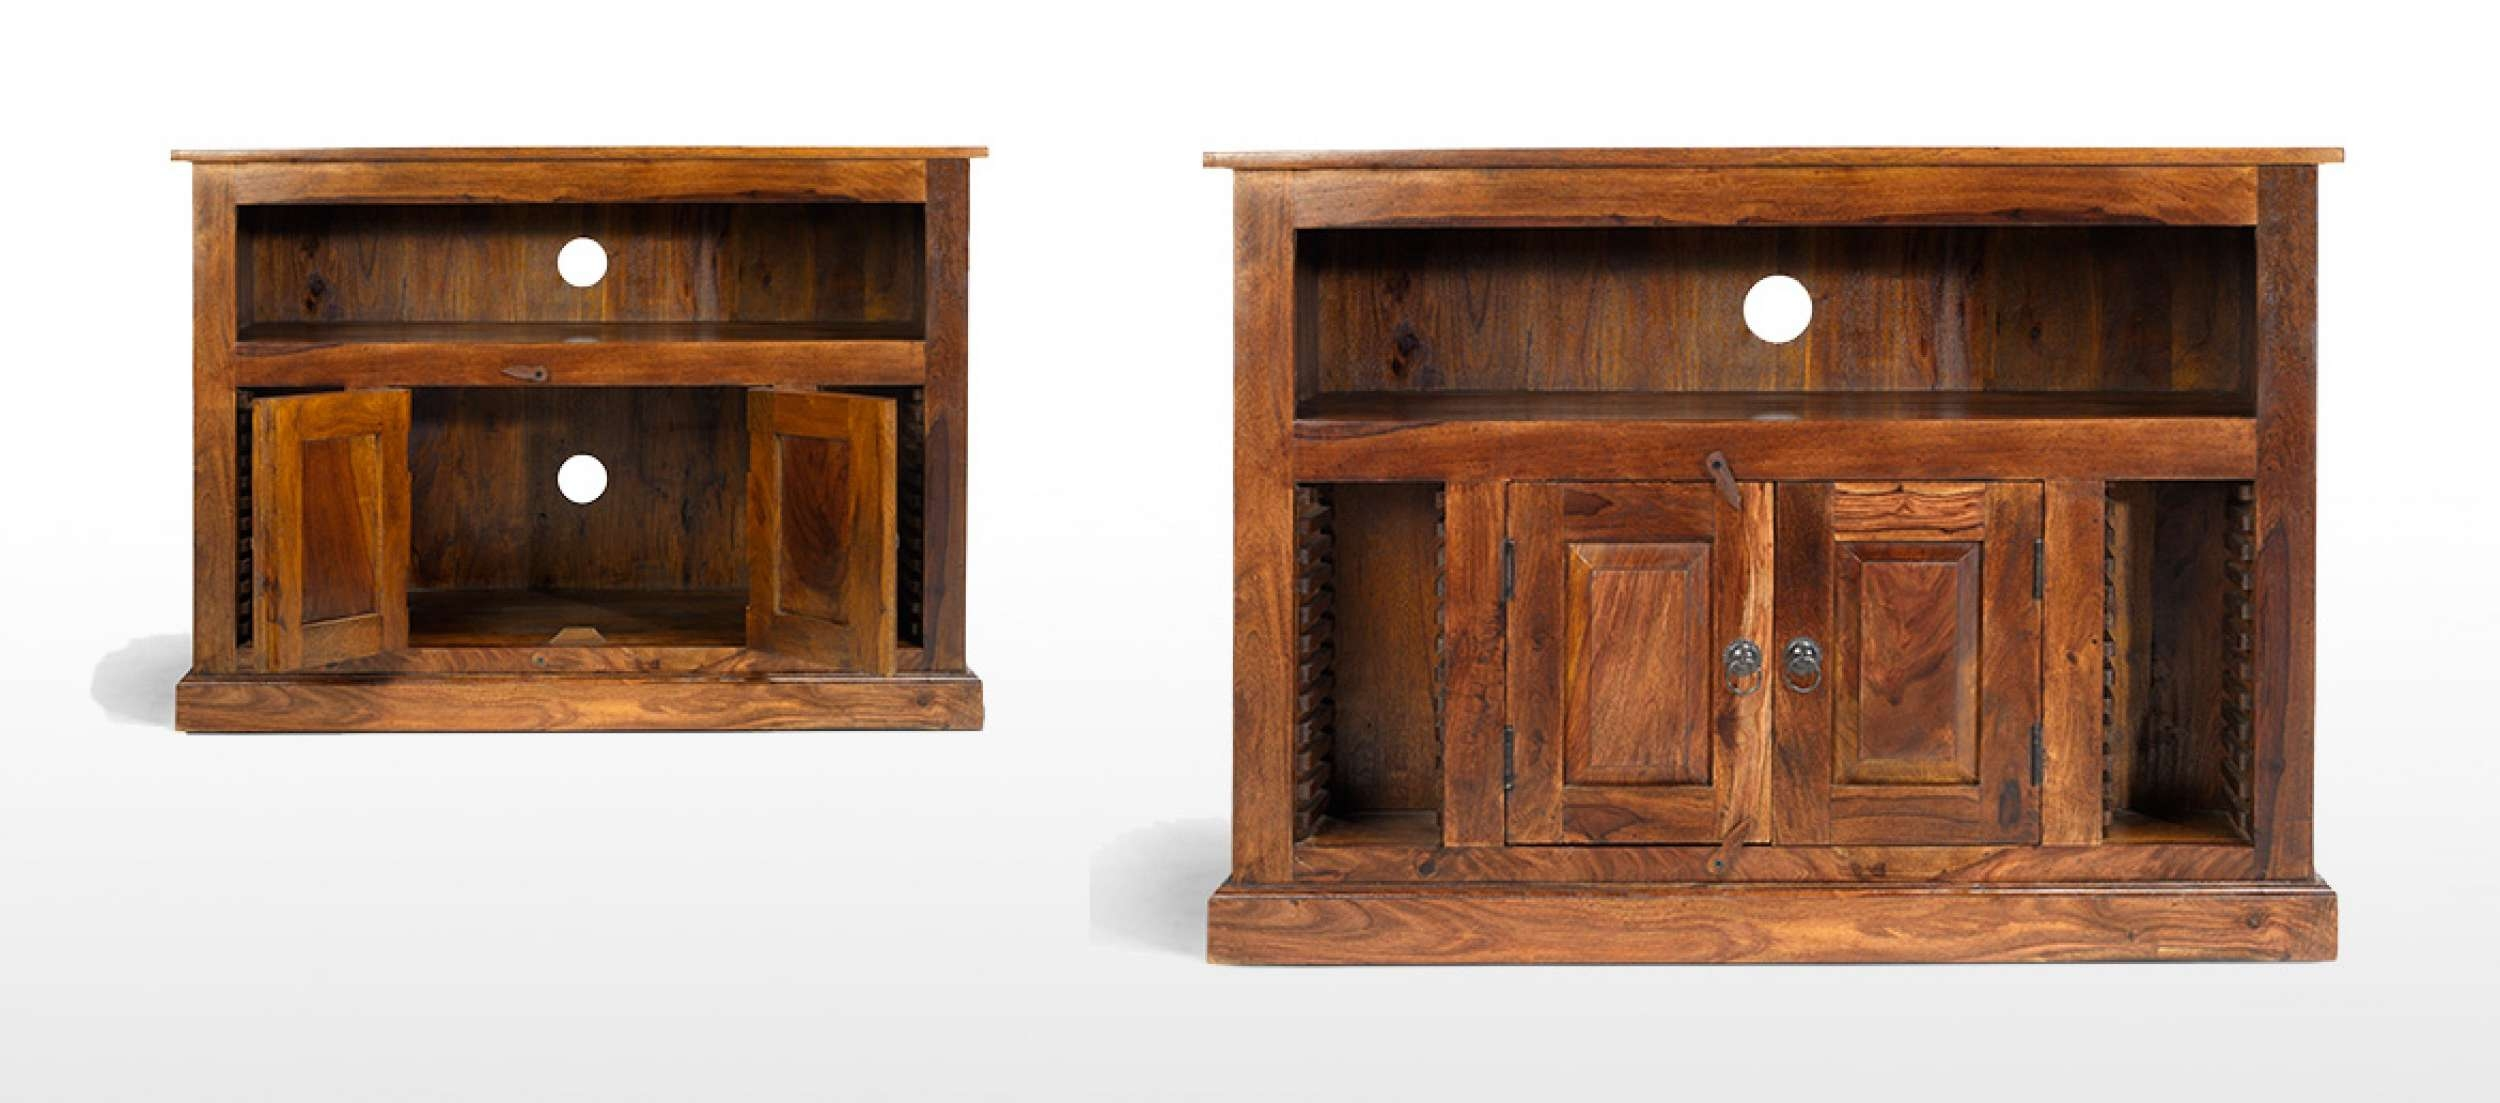 Jali Sheesham Chunky Tv Stand | Quercus Living In Sheesham Tv Stands (View 10 of 15)